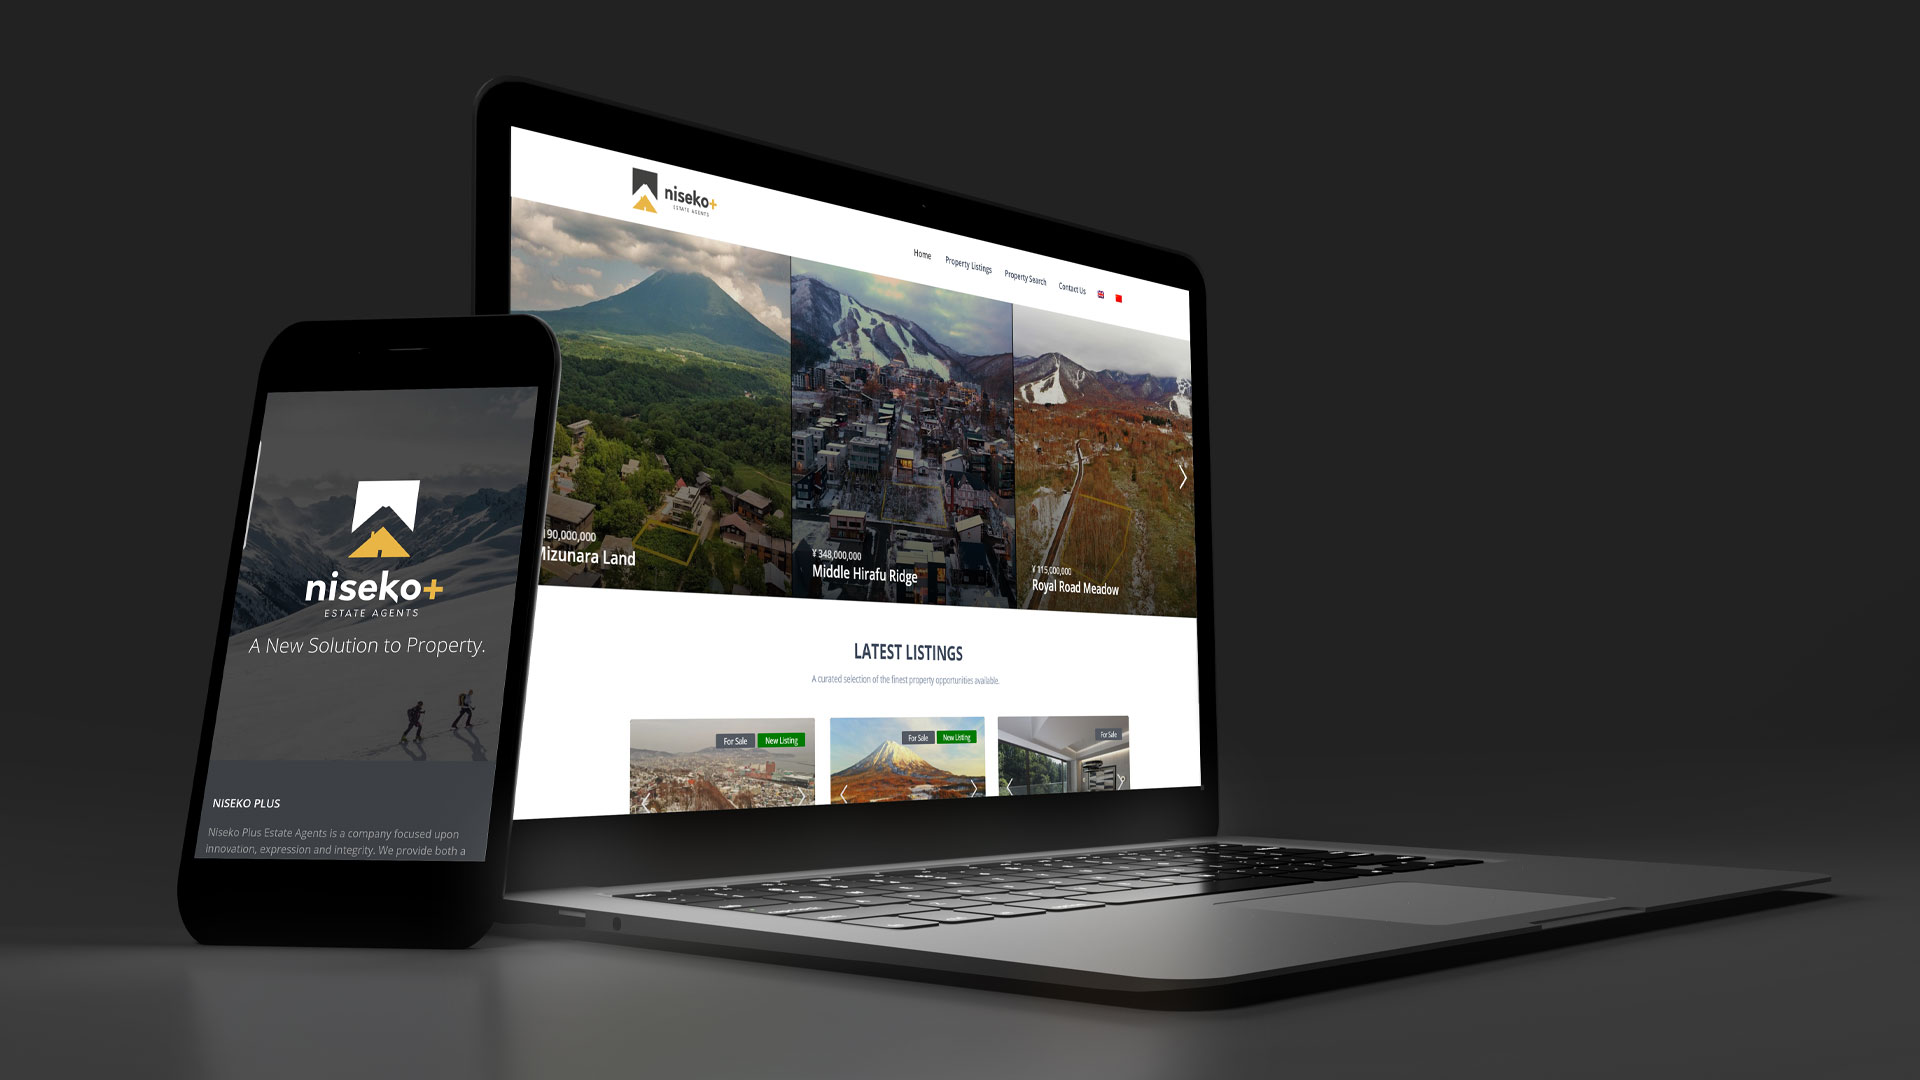 The website for Niseko+ Estate agents shows the application of good branding to the front page